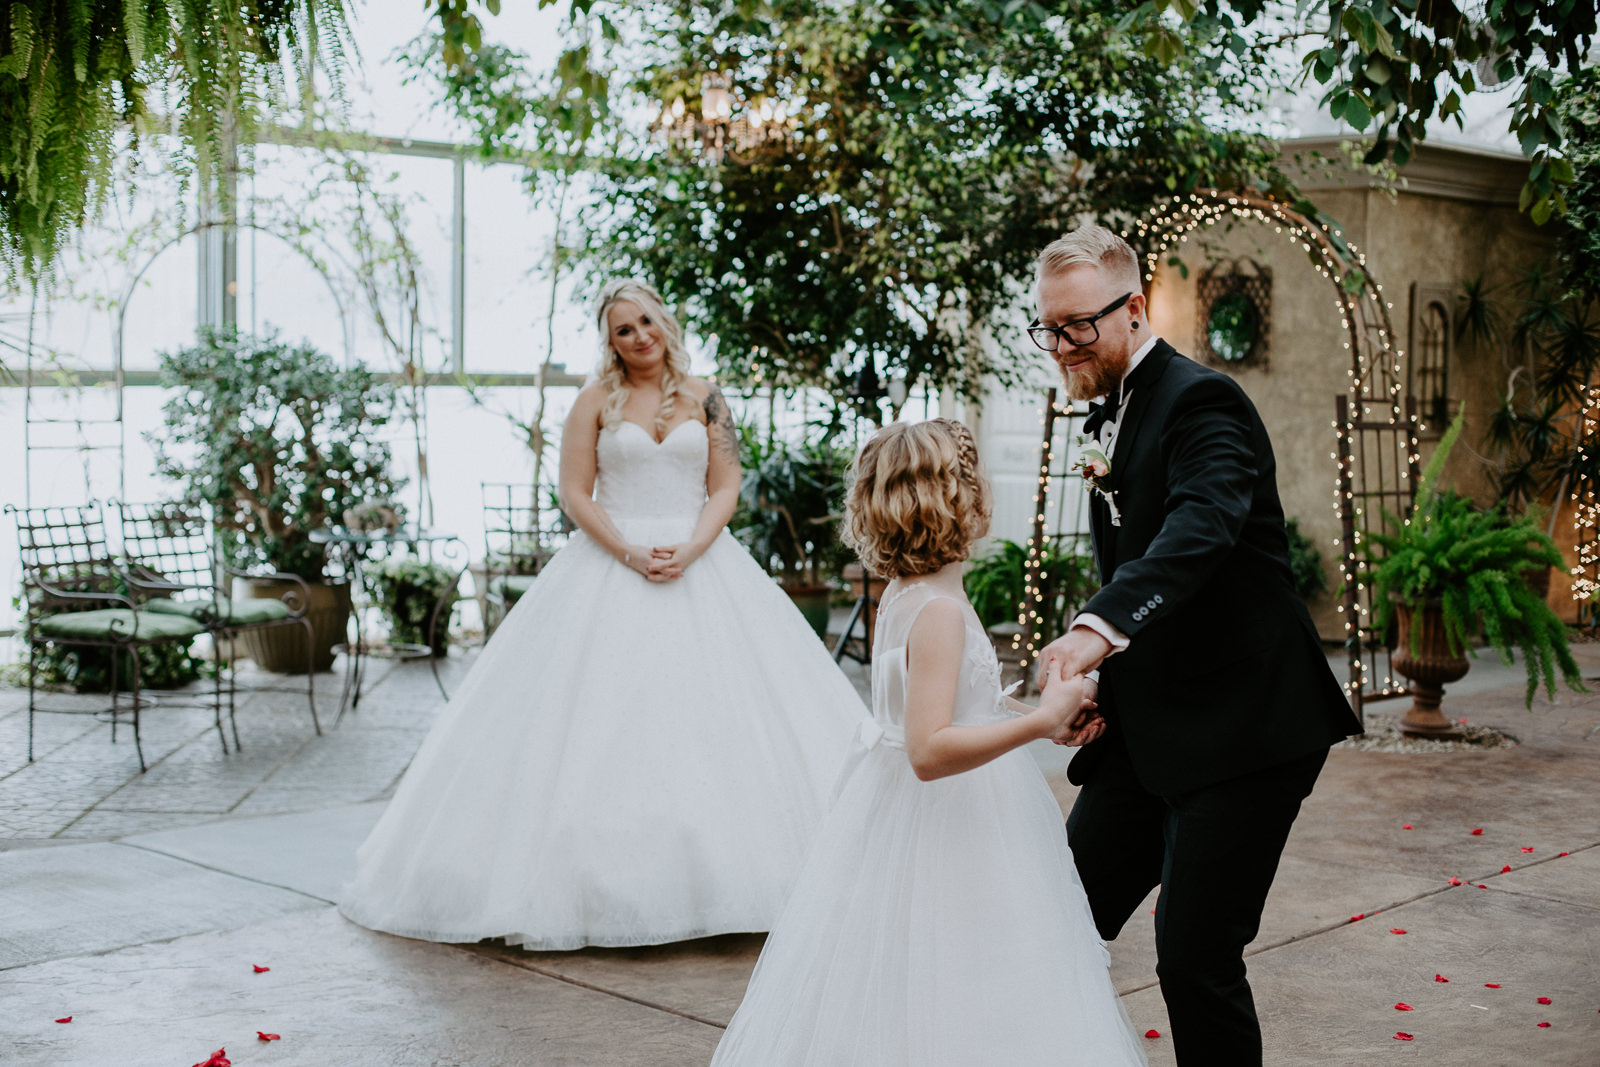 Bride looking on as her new husband dances with her daughter in candid moment